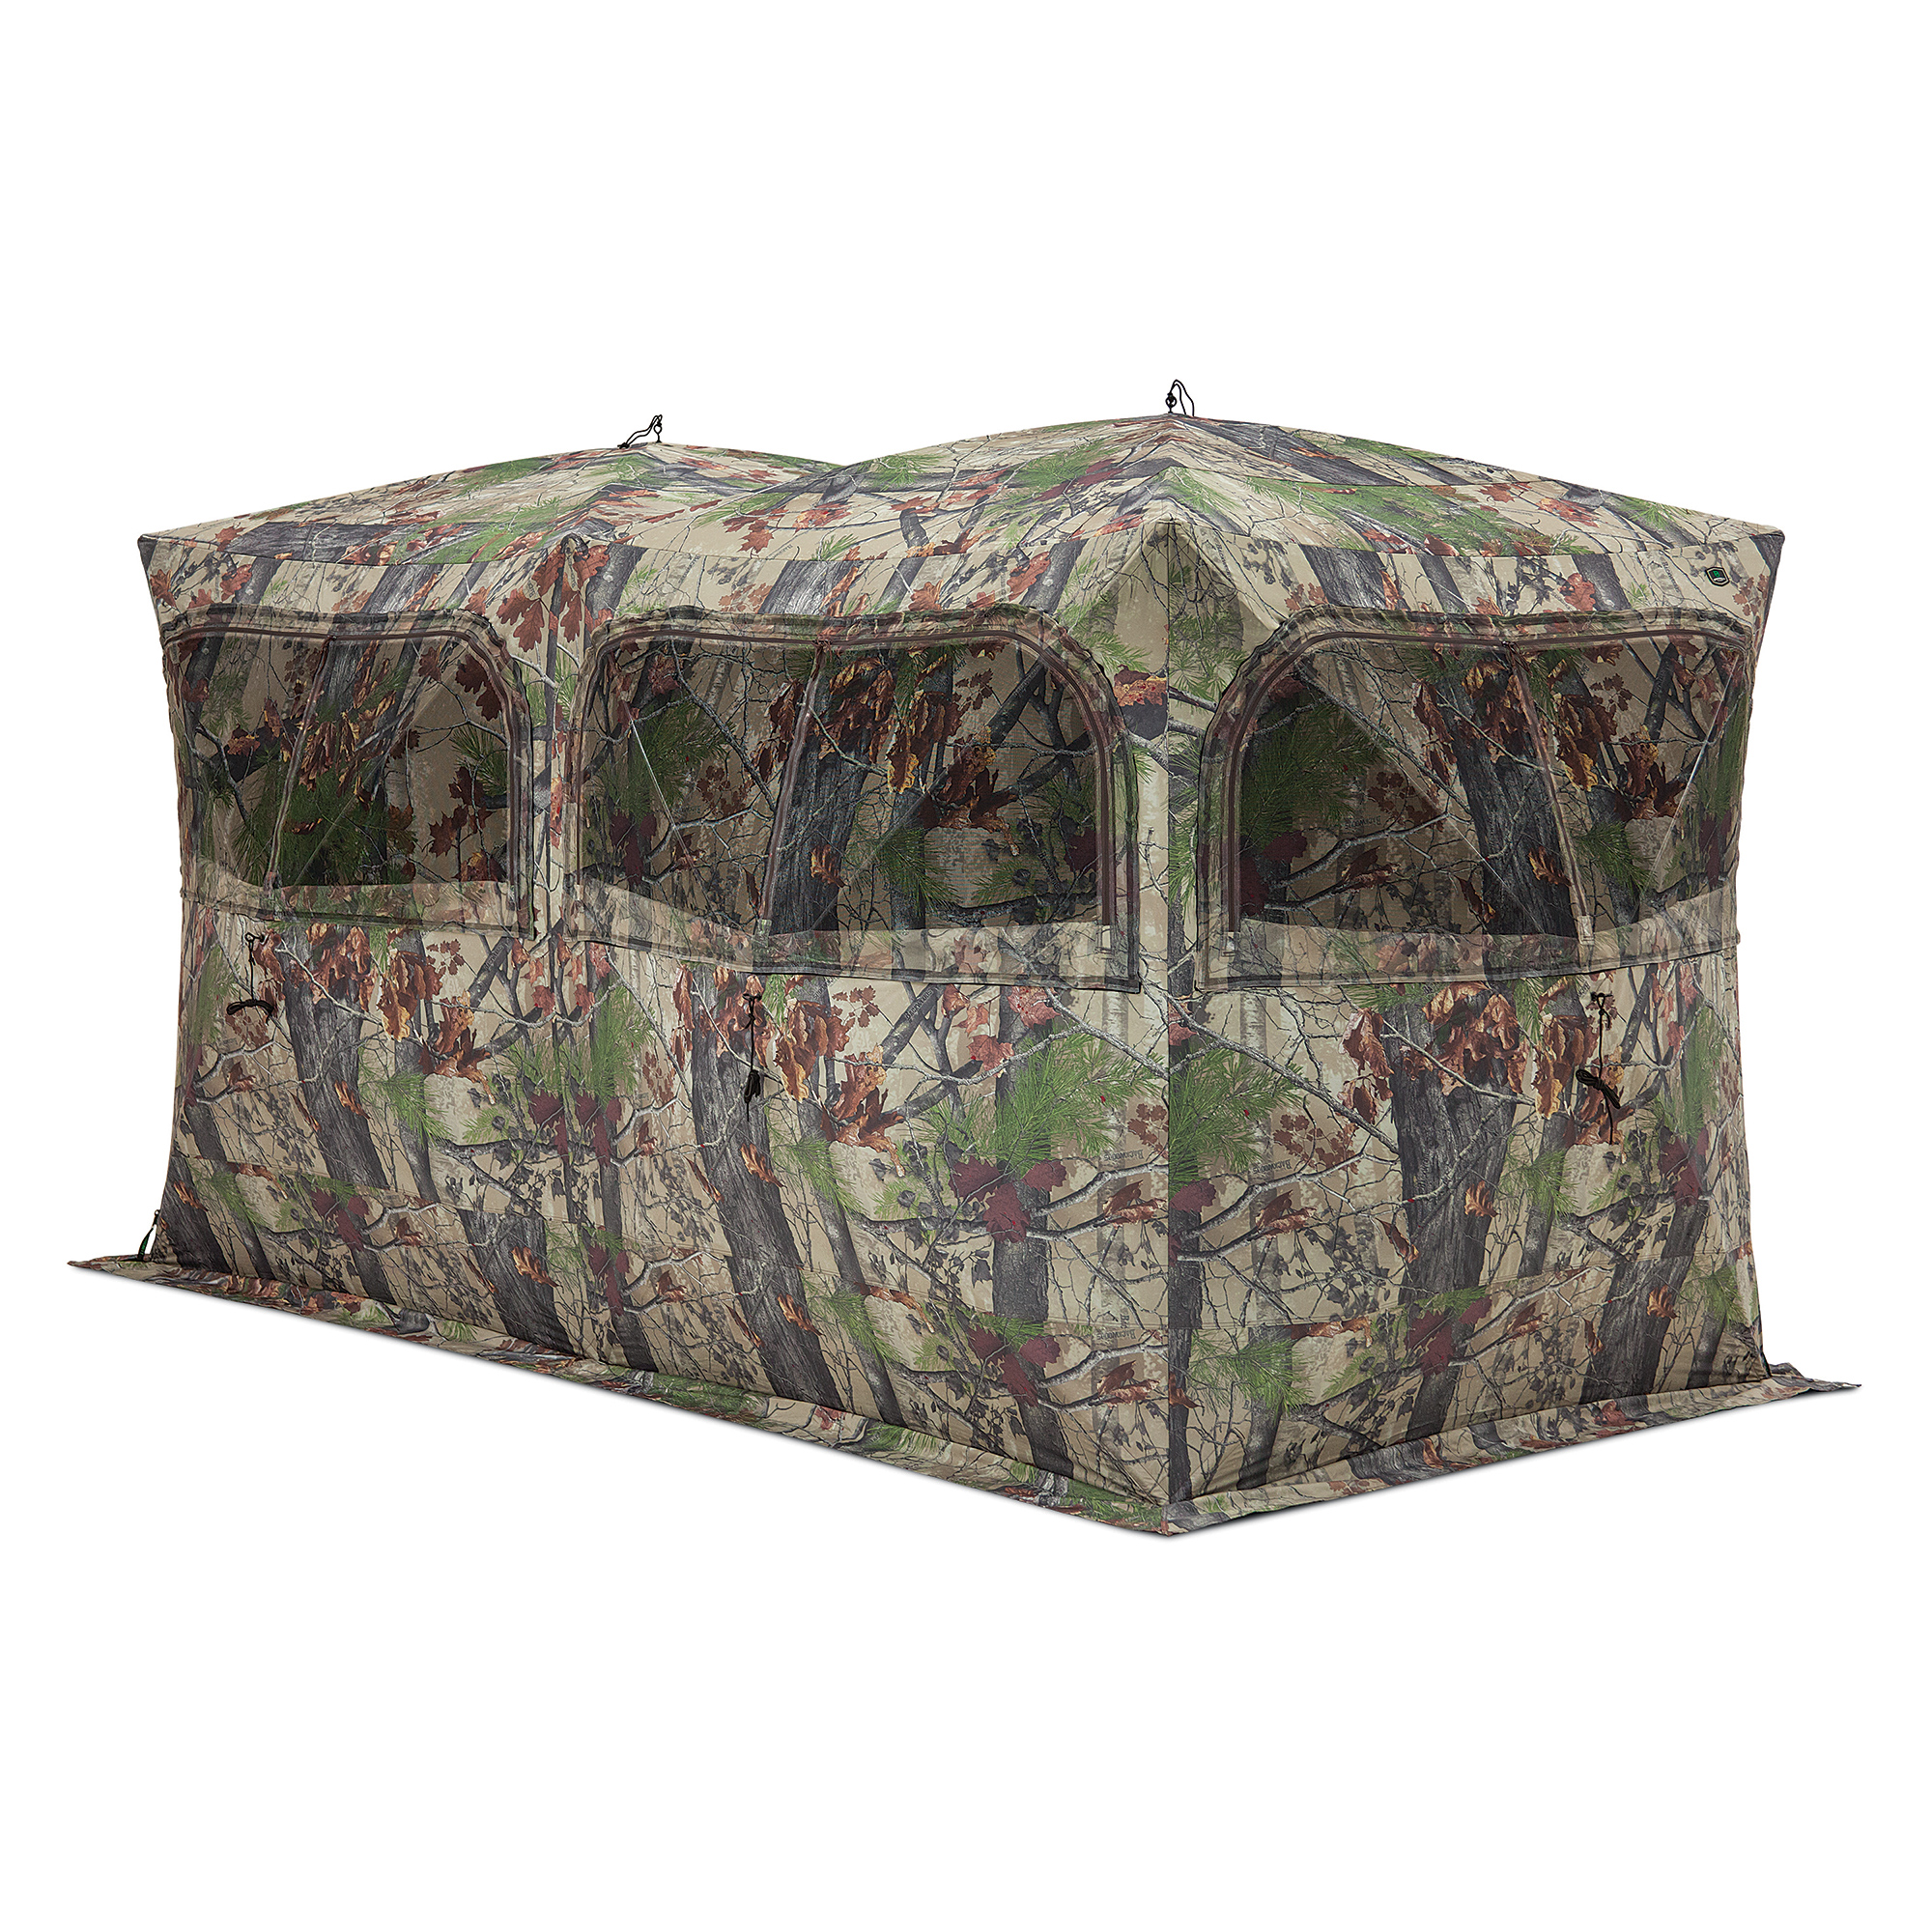 find on deals person line guides quotations blinds box shopping inch man waterfowl blind get hunting cheap tricc black at